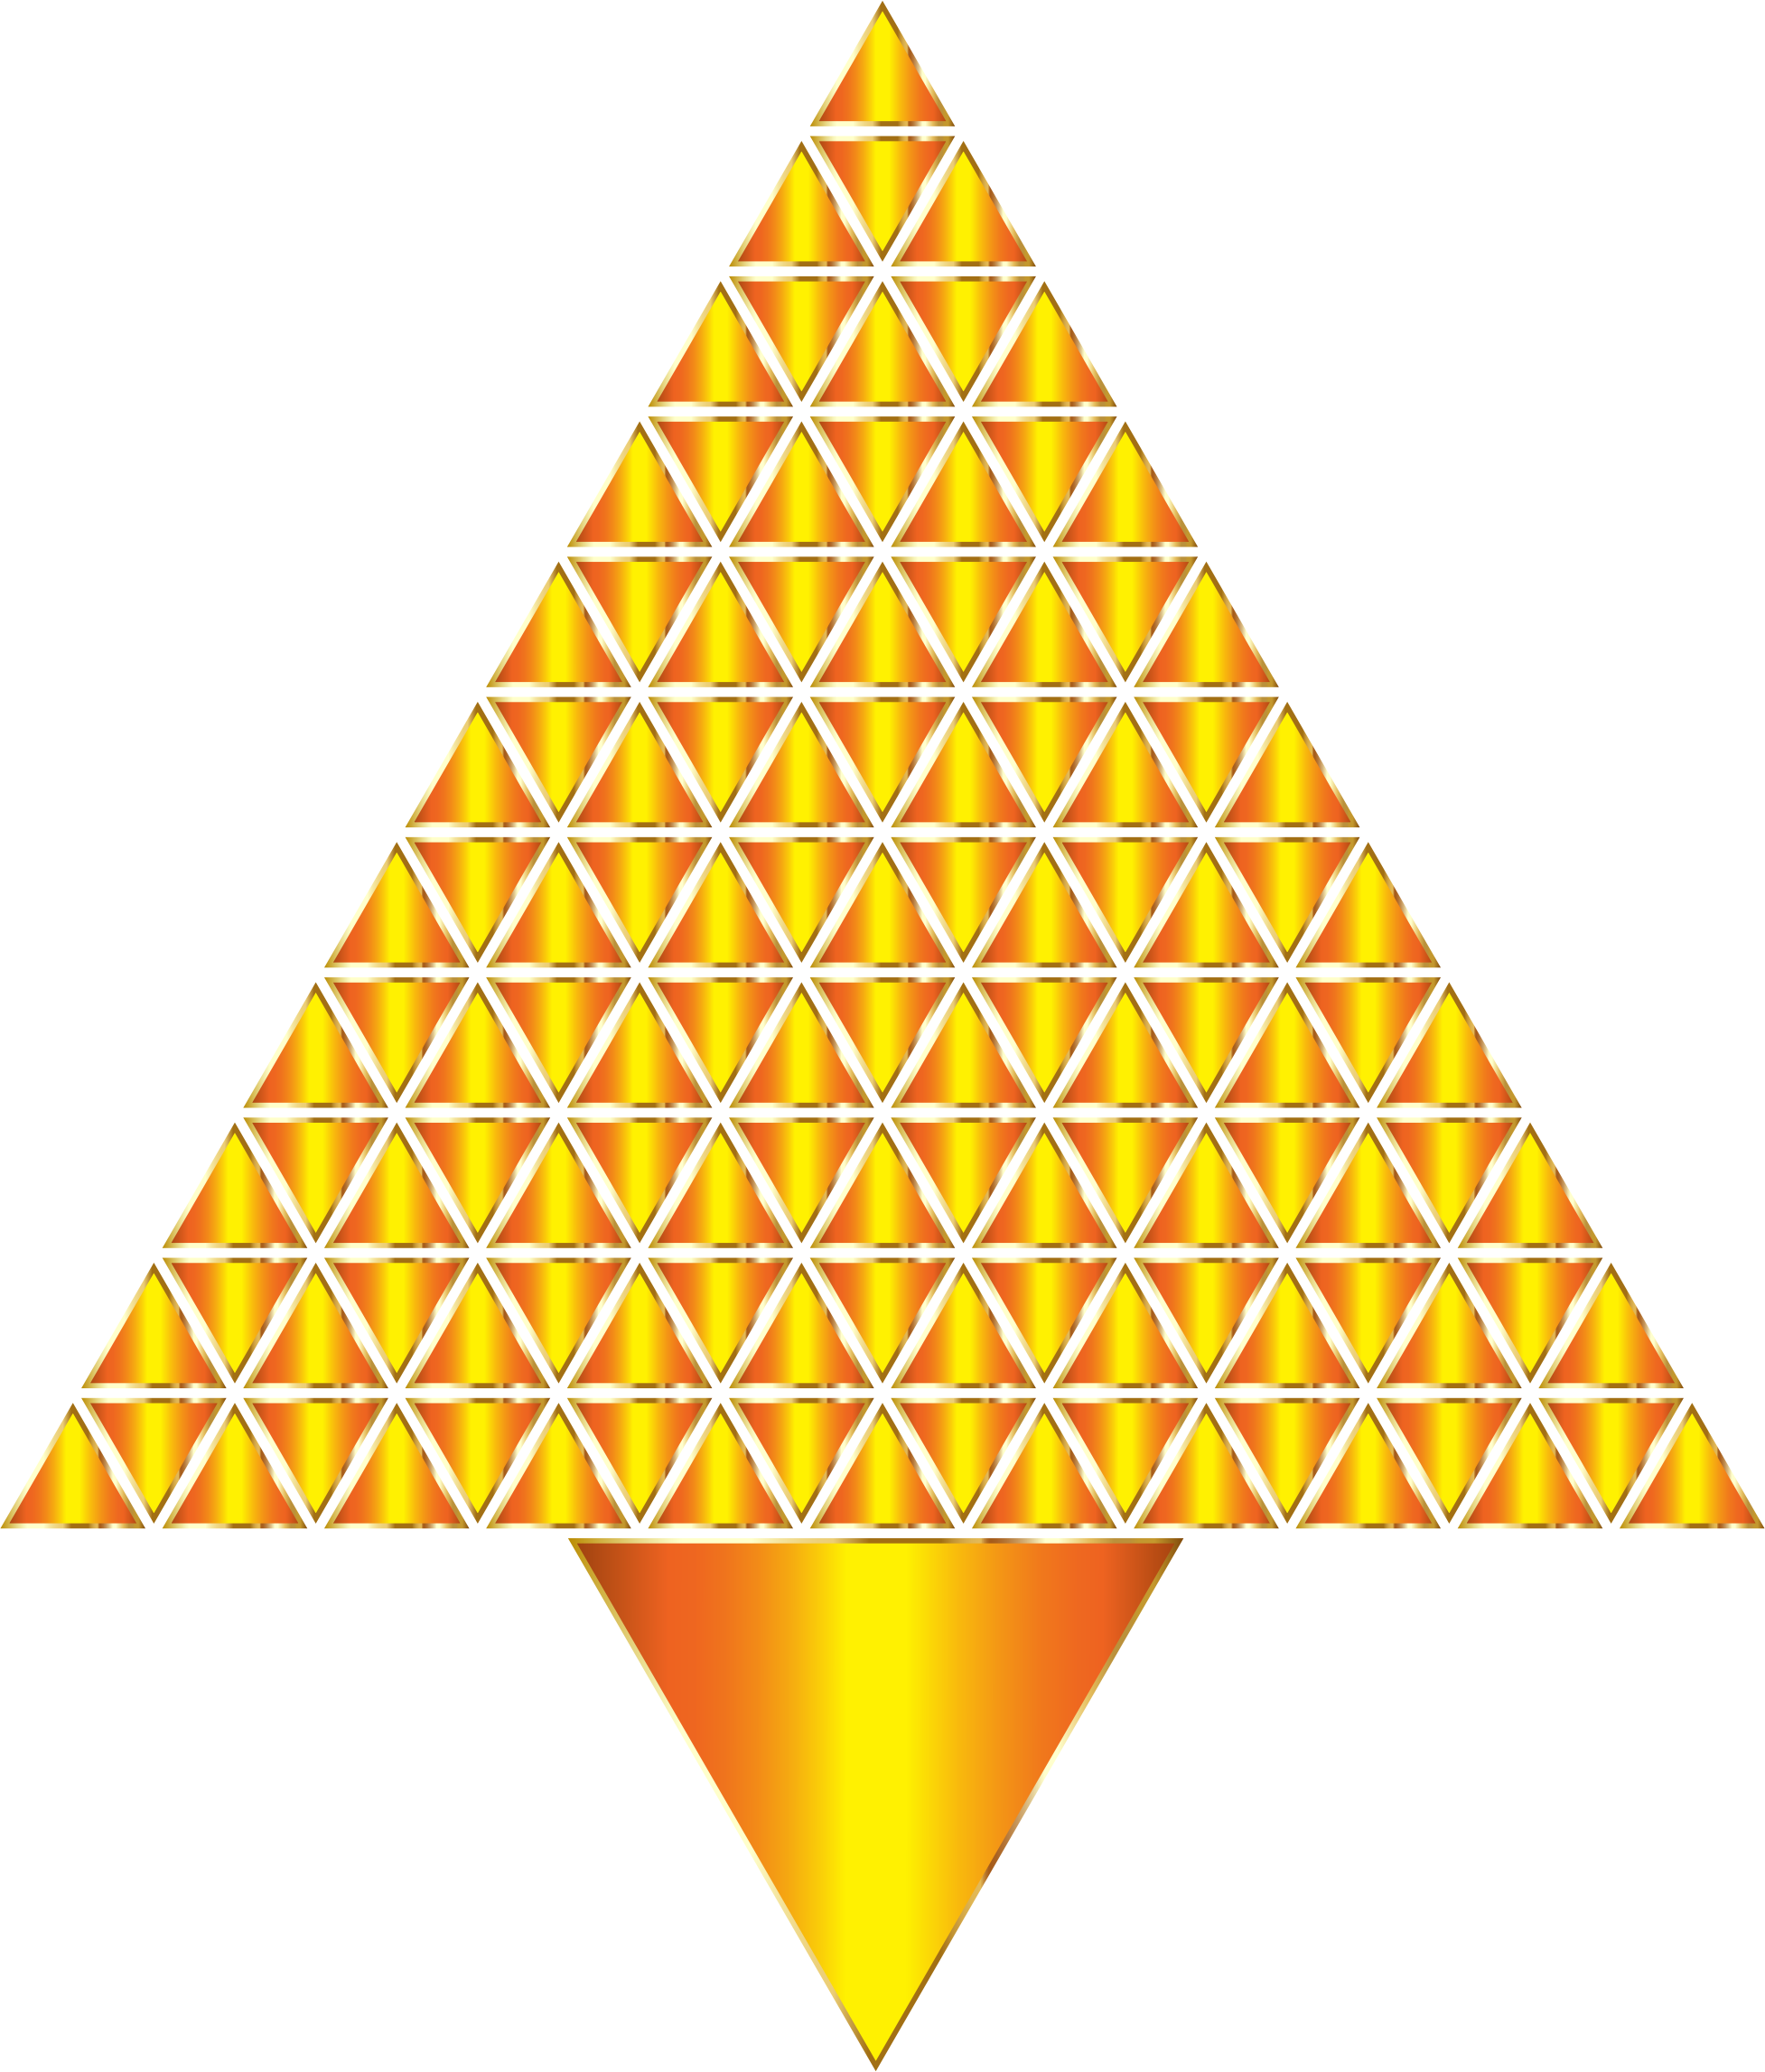 Prismatic Abstract Triangular Christmas Tree 9 No Background by GDJ